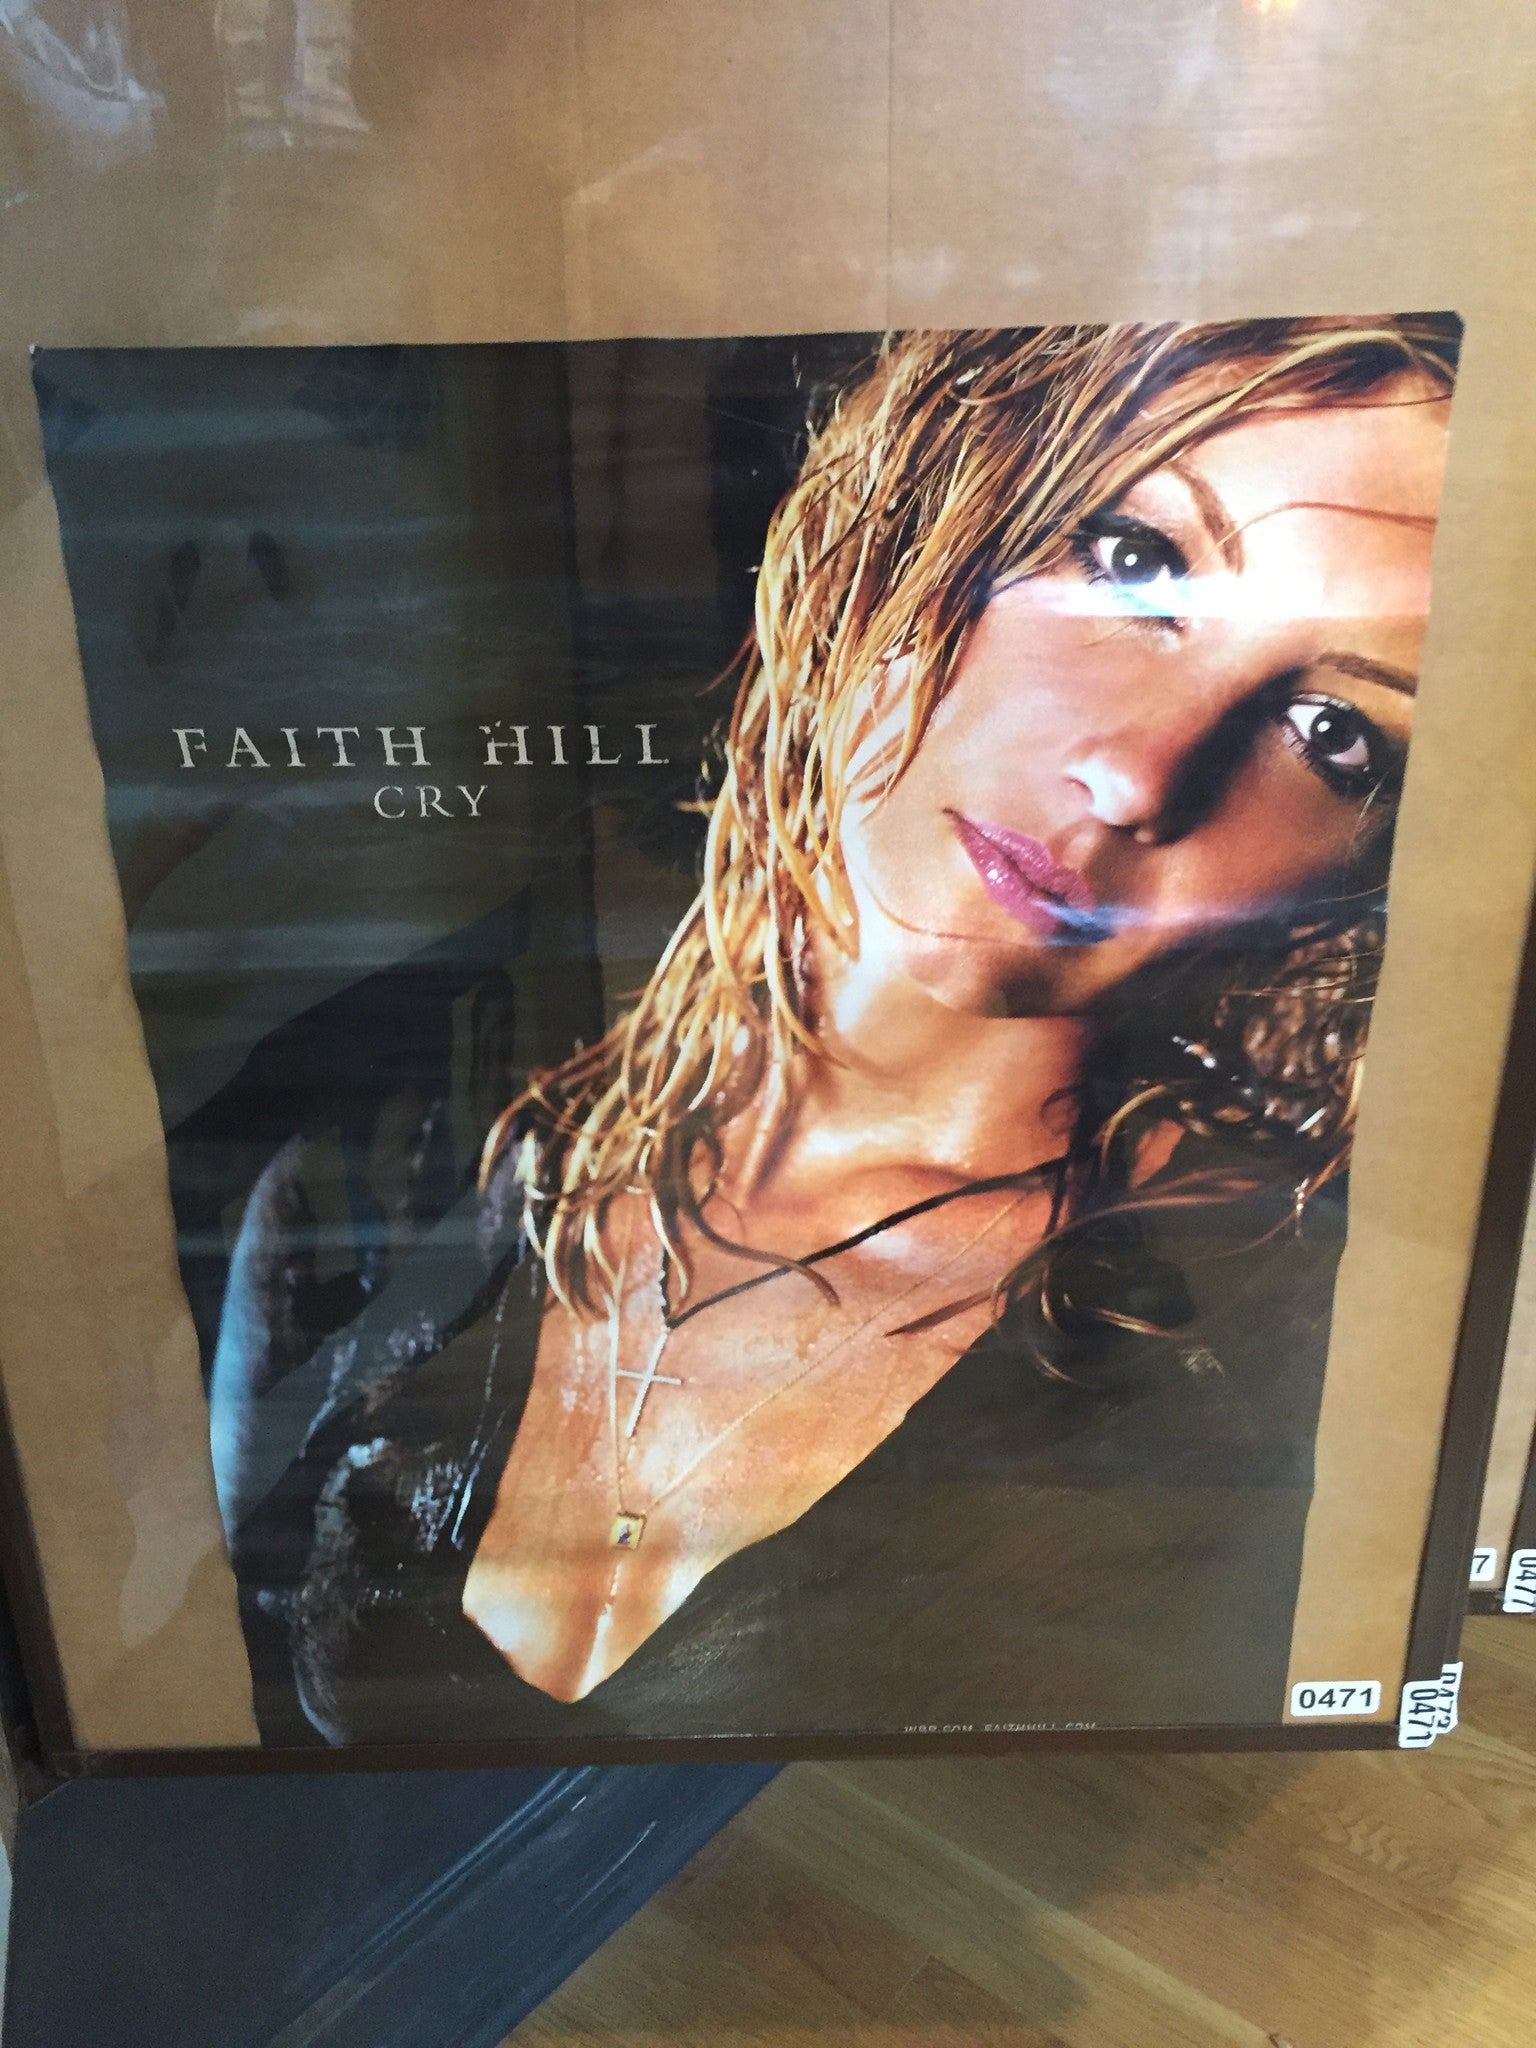 Faith Hill – Cry - 2002 - 0471